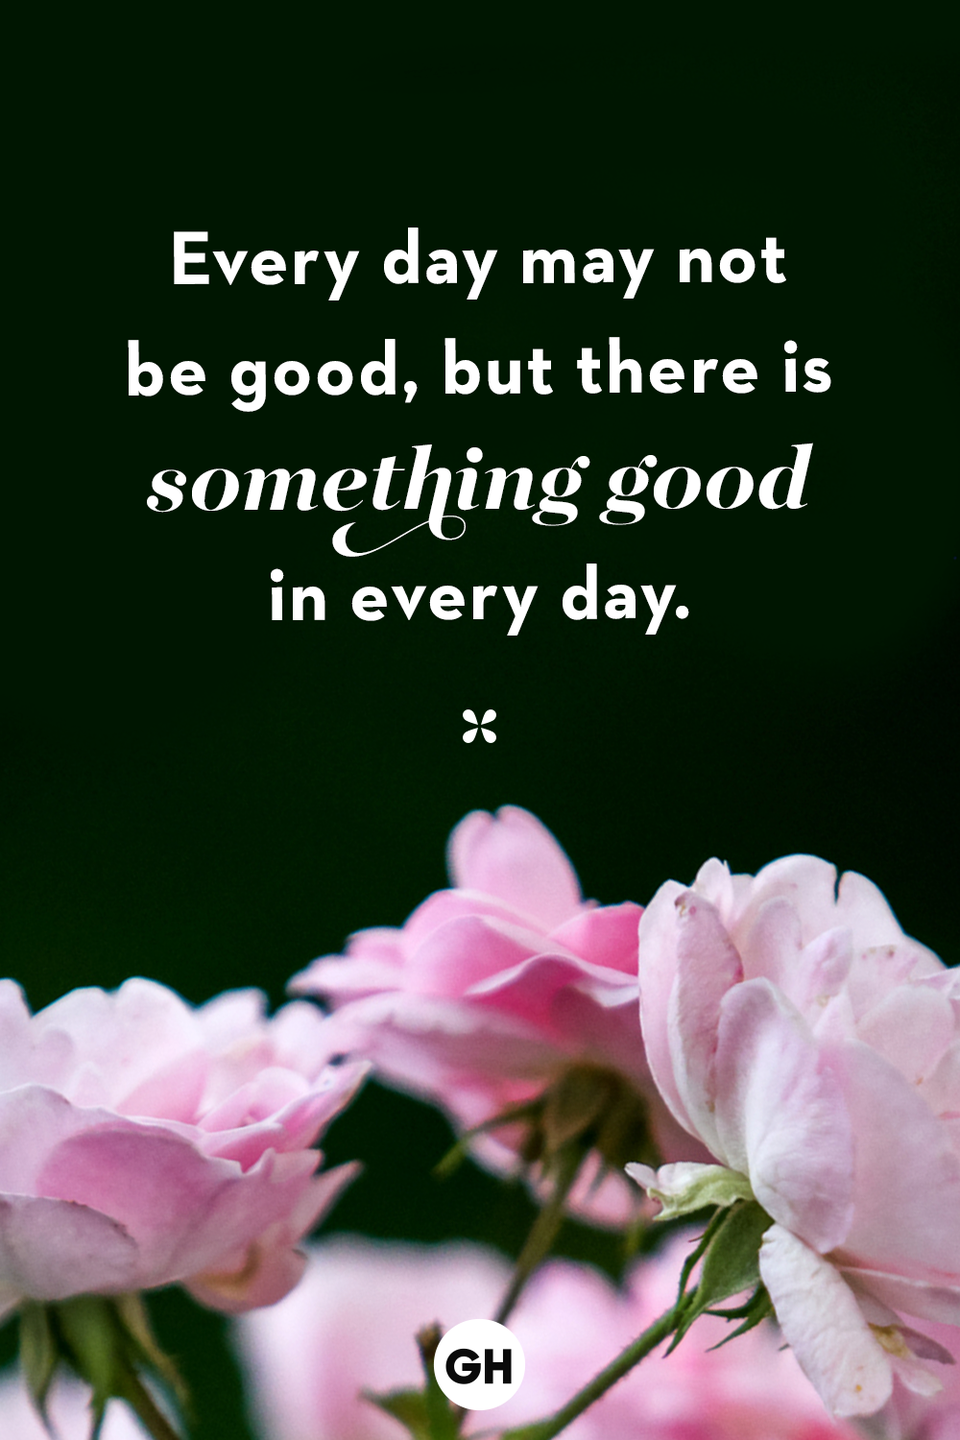 <p>Every day may not be good, but there is something good in every day.</p>